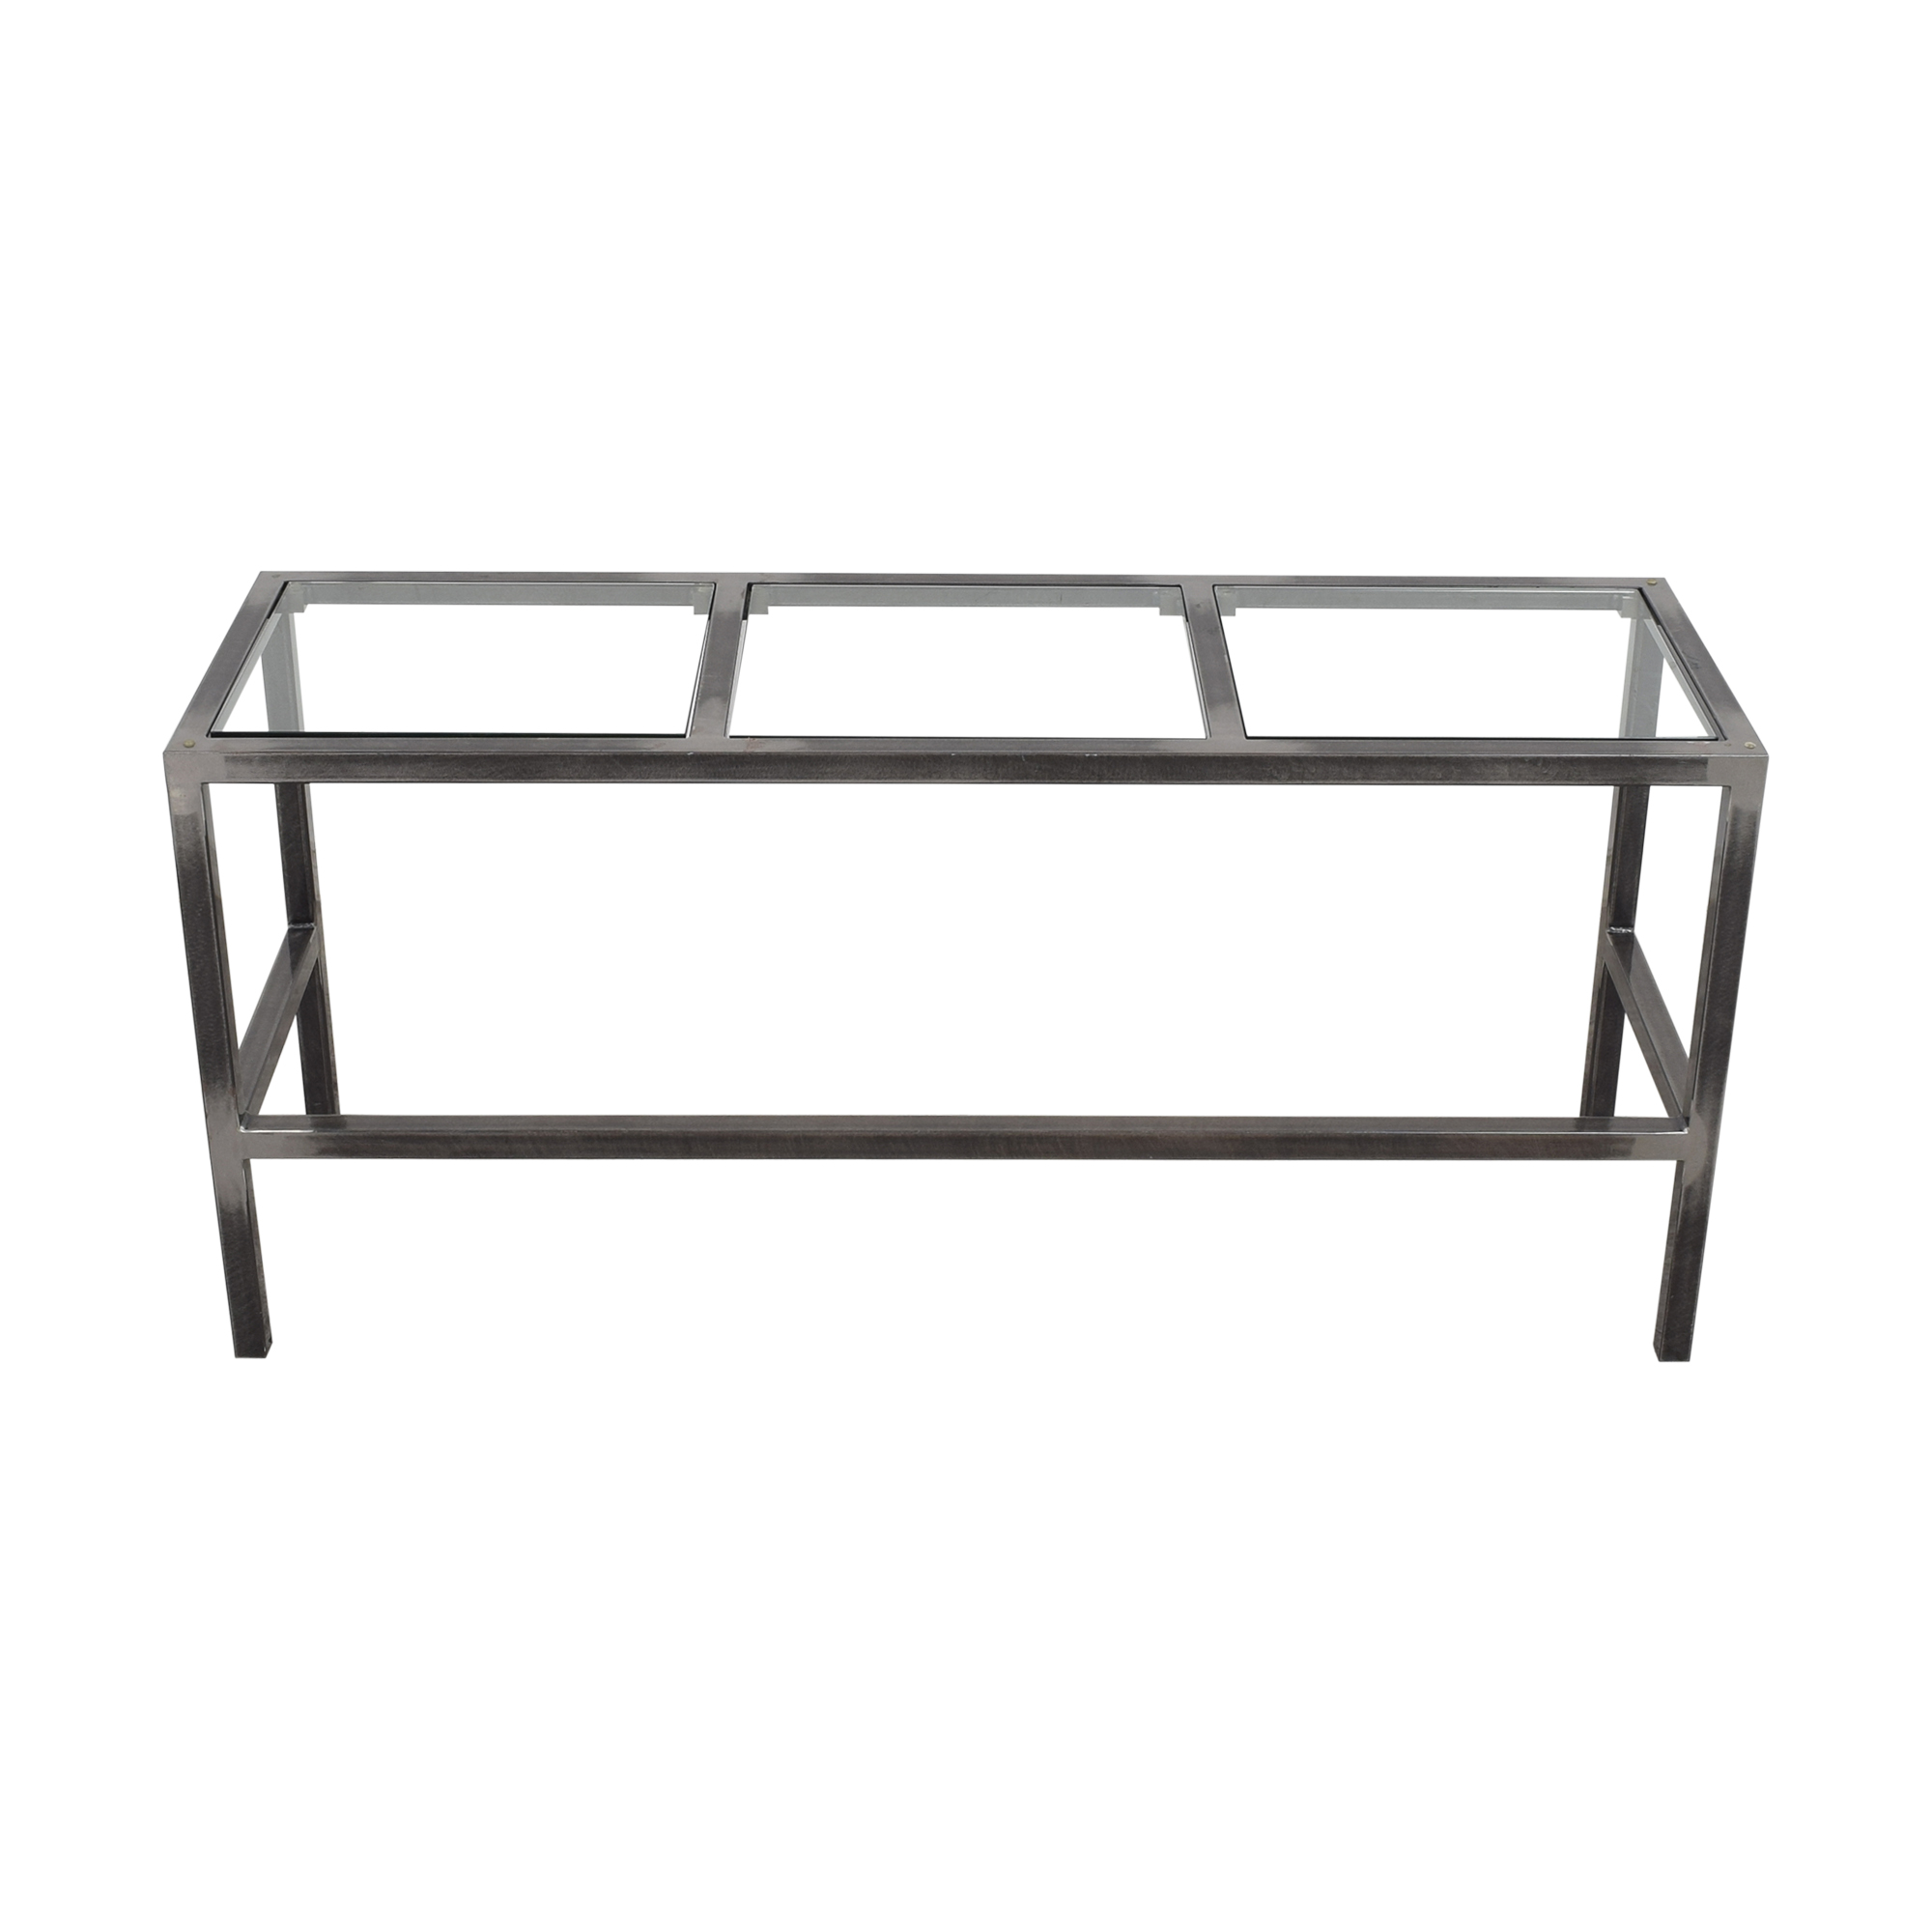 shop Design Within Reach Design Within Reach Console Table online